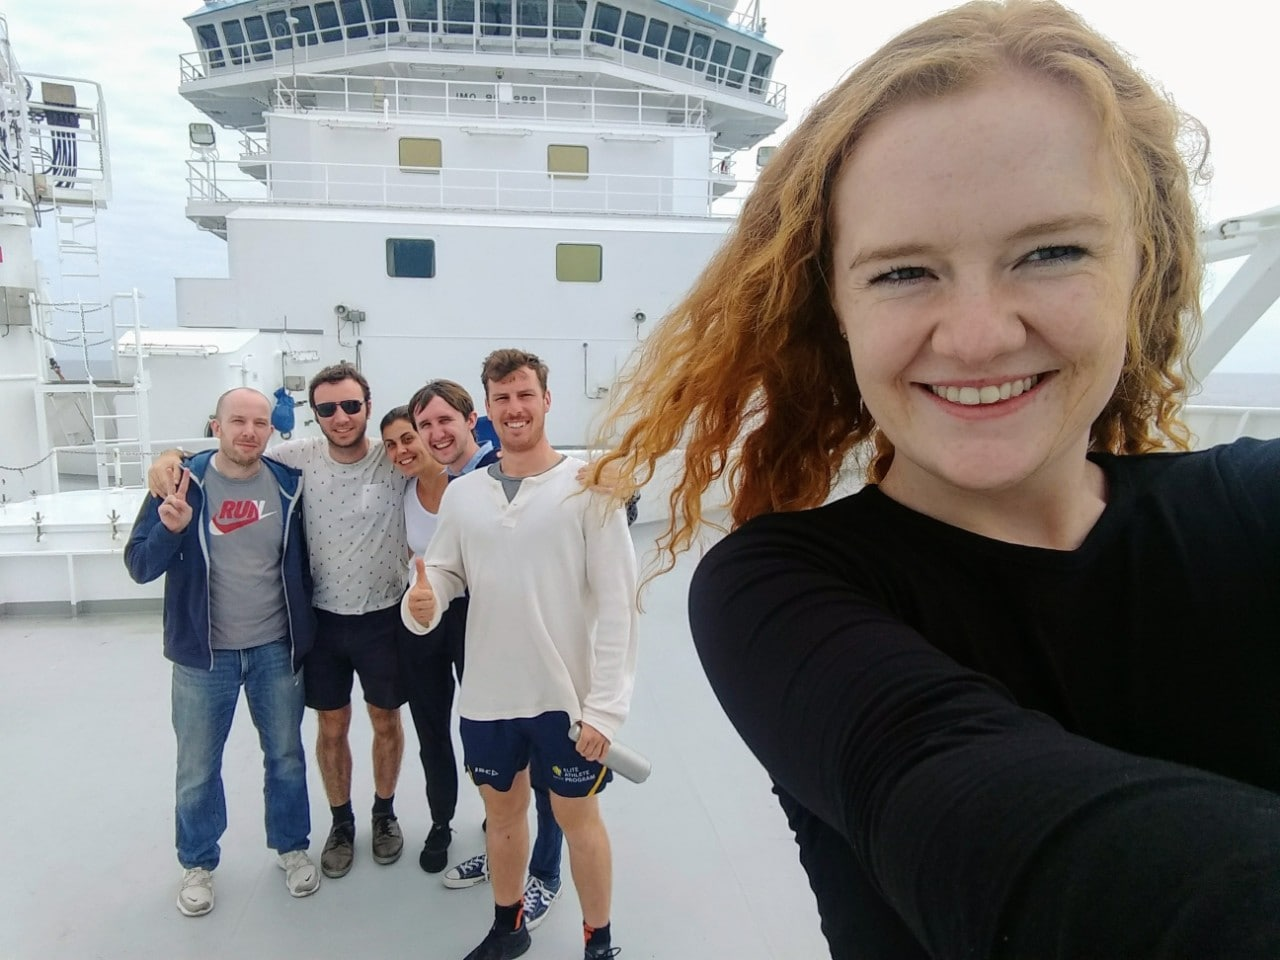 Part of the research team onboard CSIRO's RV Investigator: (left to right) Simon Williams, Ben Mather, Zsanett Szilagyi, Edward Clennett, Christopher Dagger, Quinn Anderson.